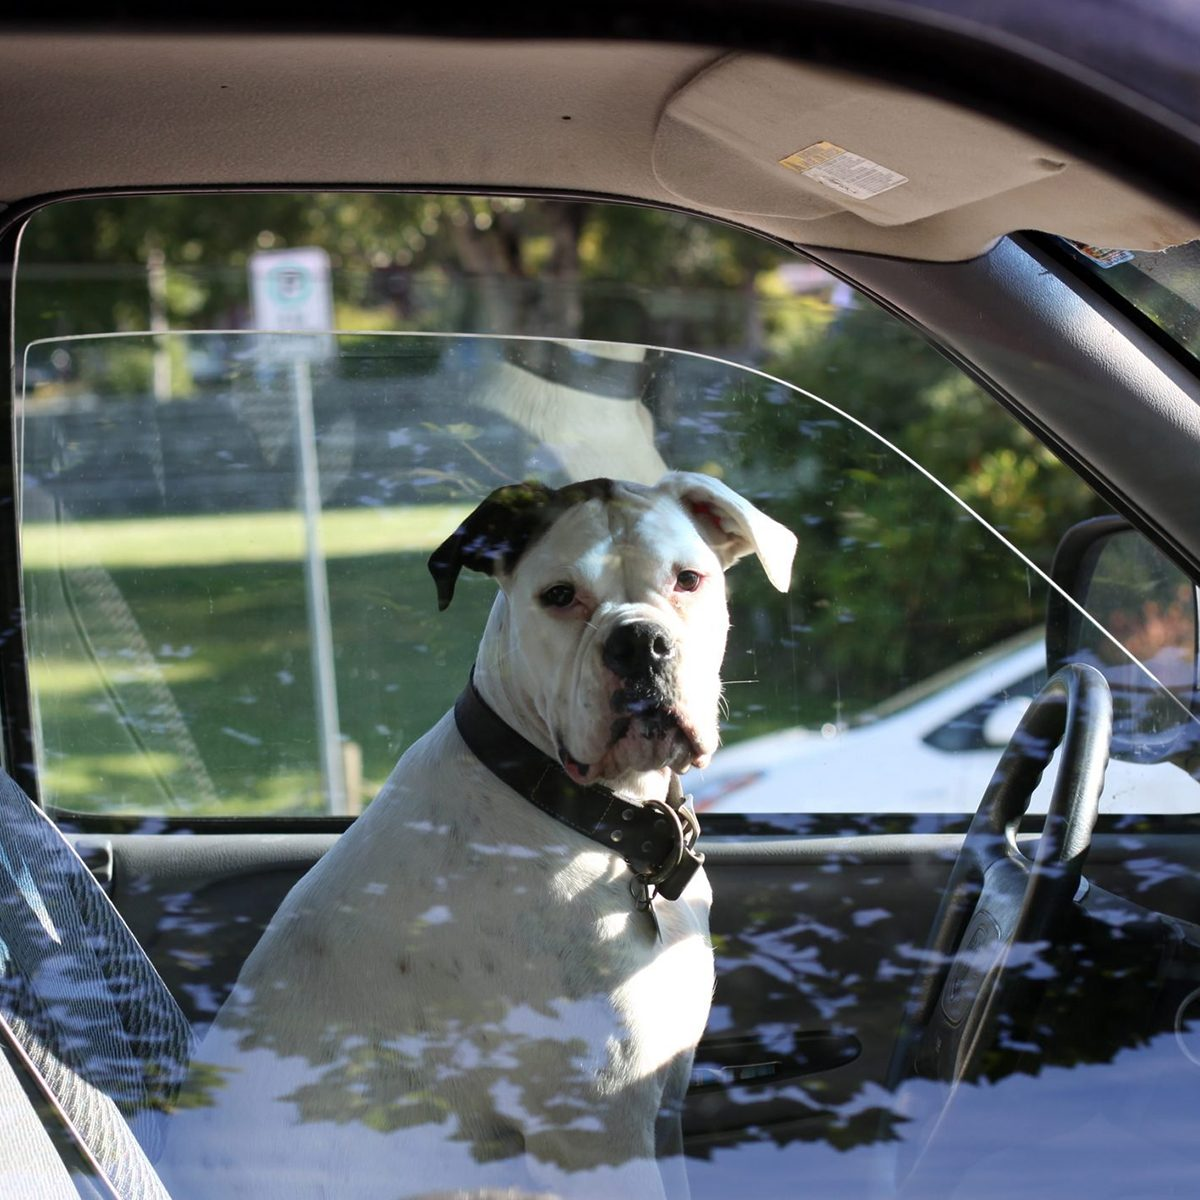 Dog sits in driver's seat of vehicle.Dog looks towards camerasteering wheel visibleRrflections on window glass.